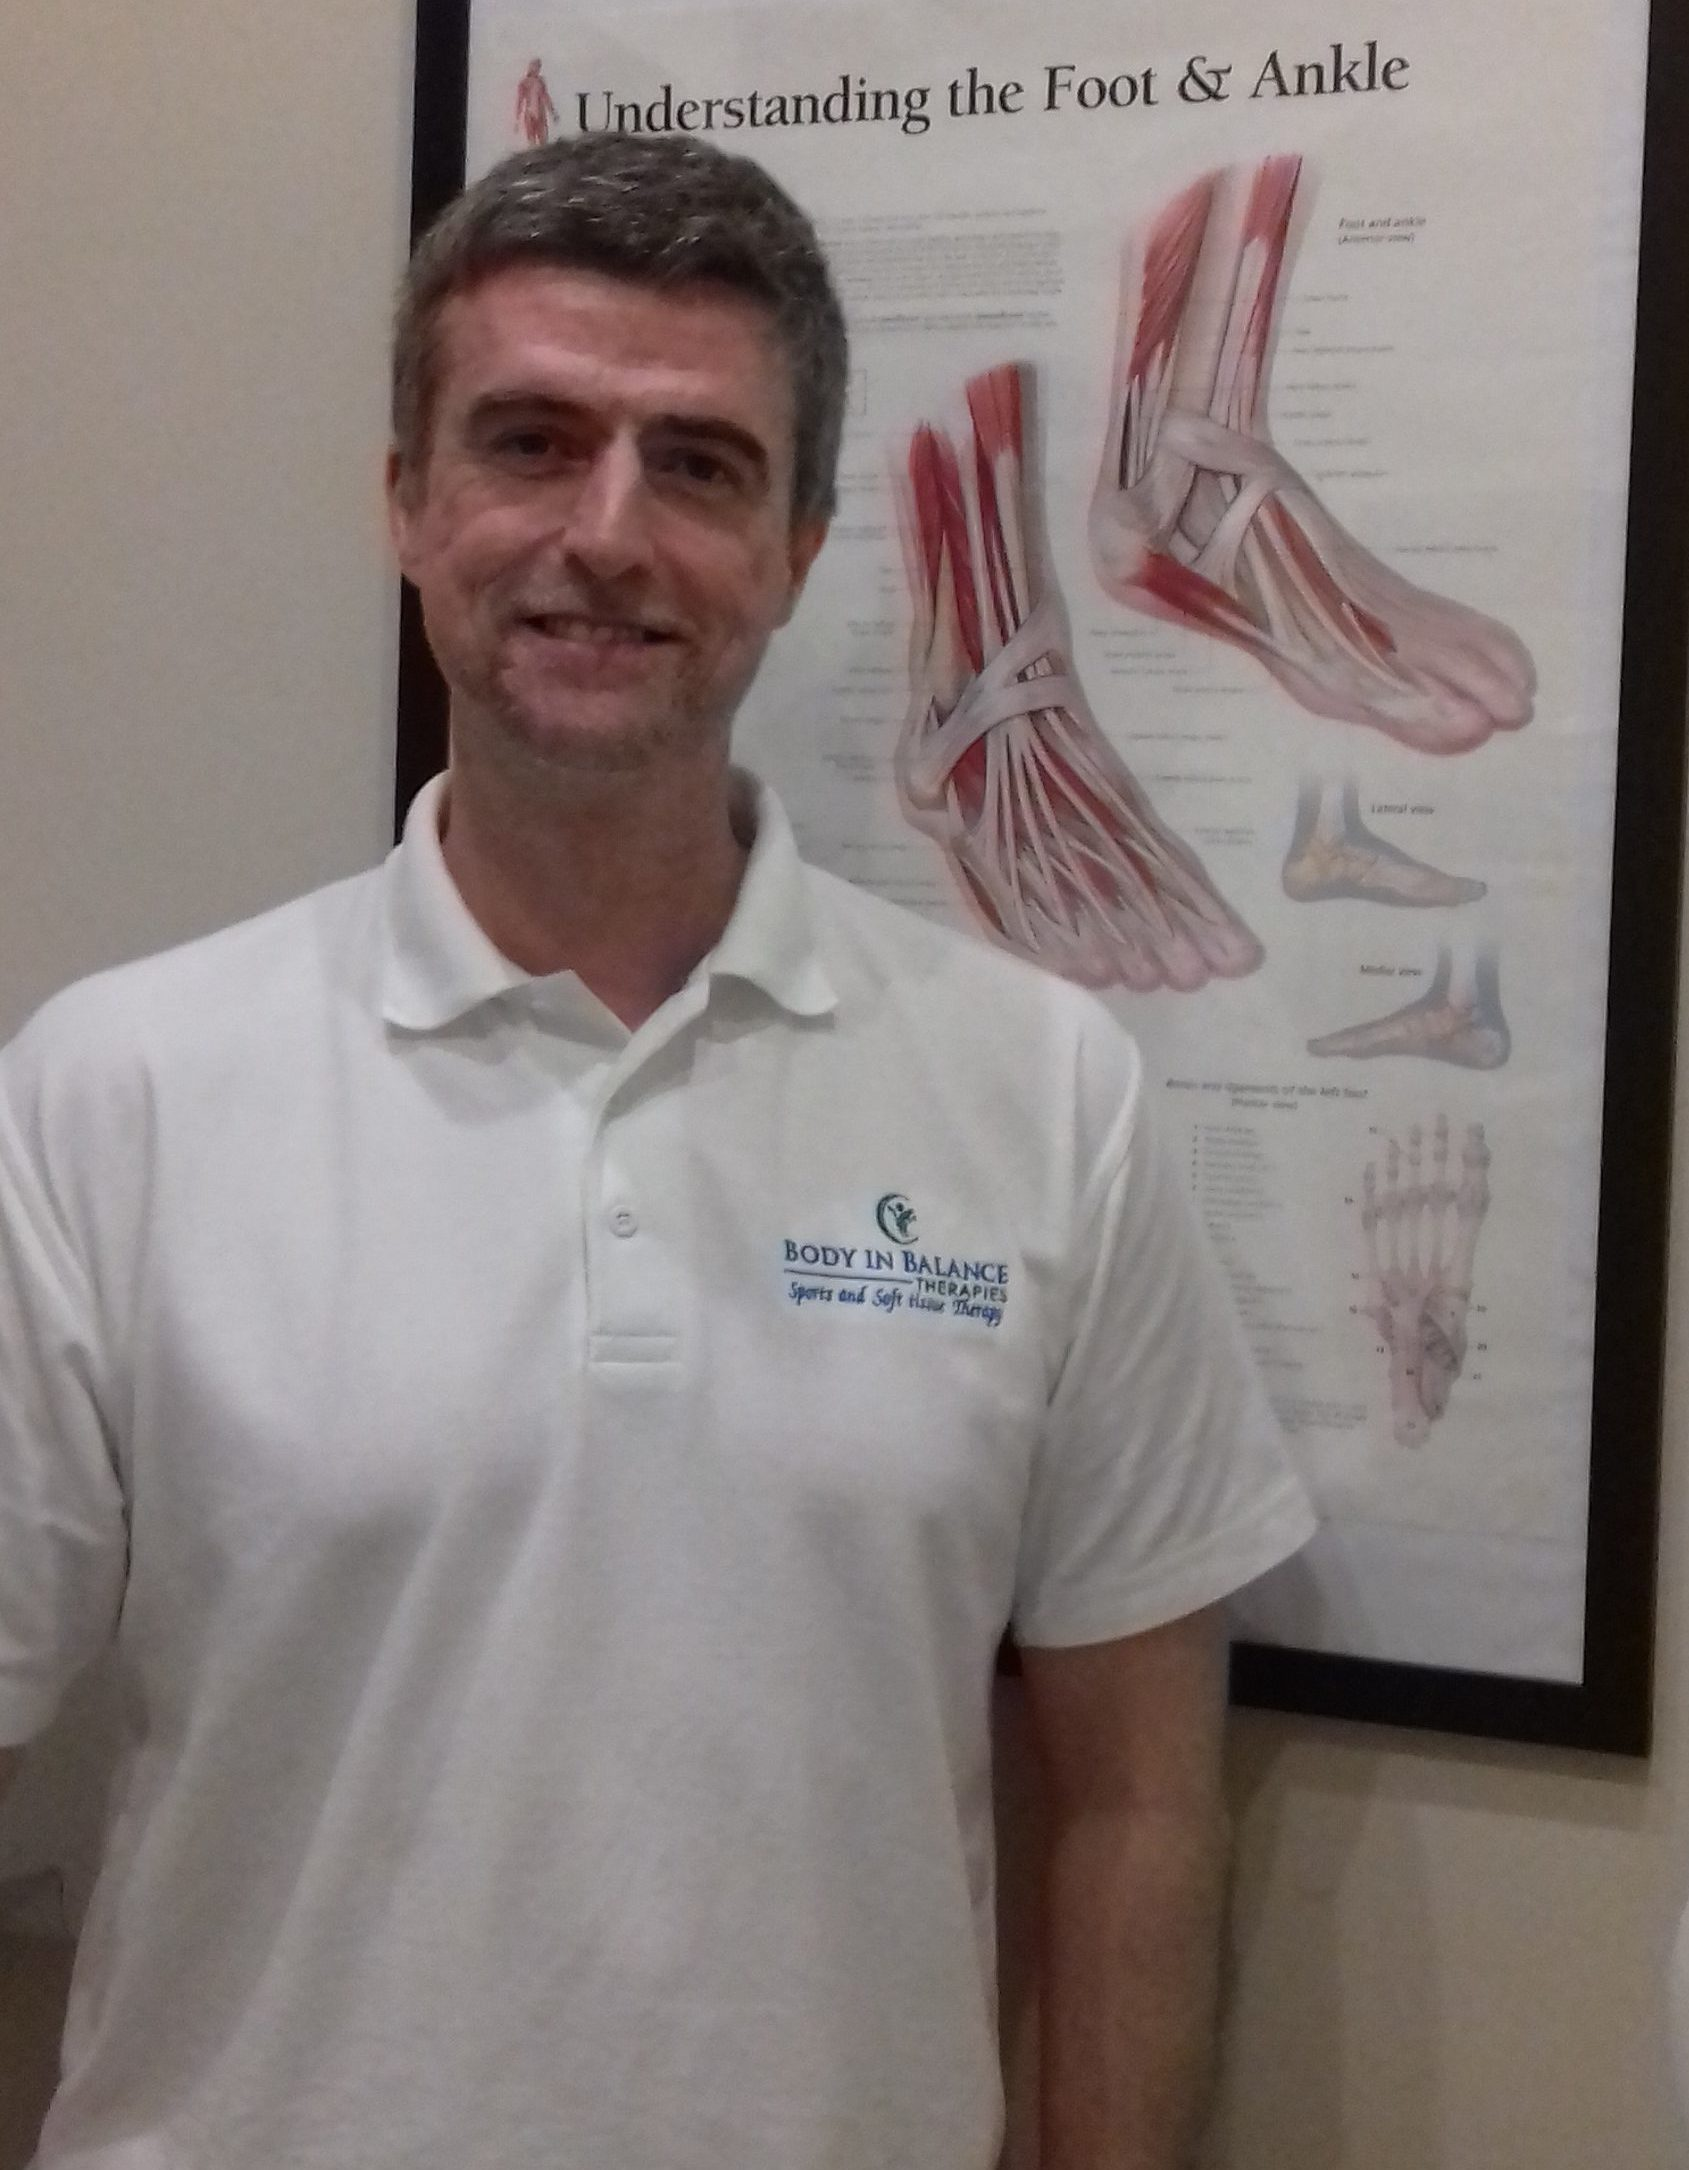 Jeff Pringle - Sports Therapist, Advanced Clinical Massage Therapist.